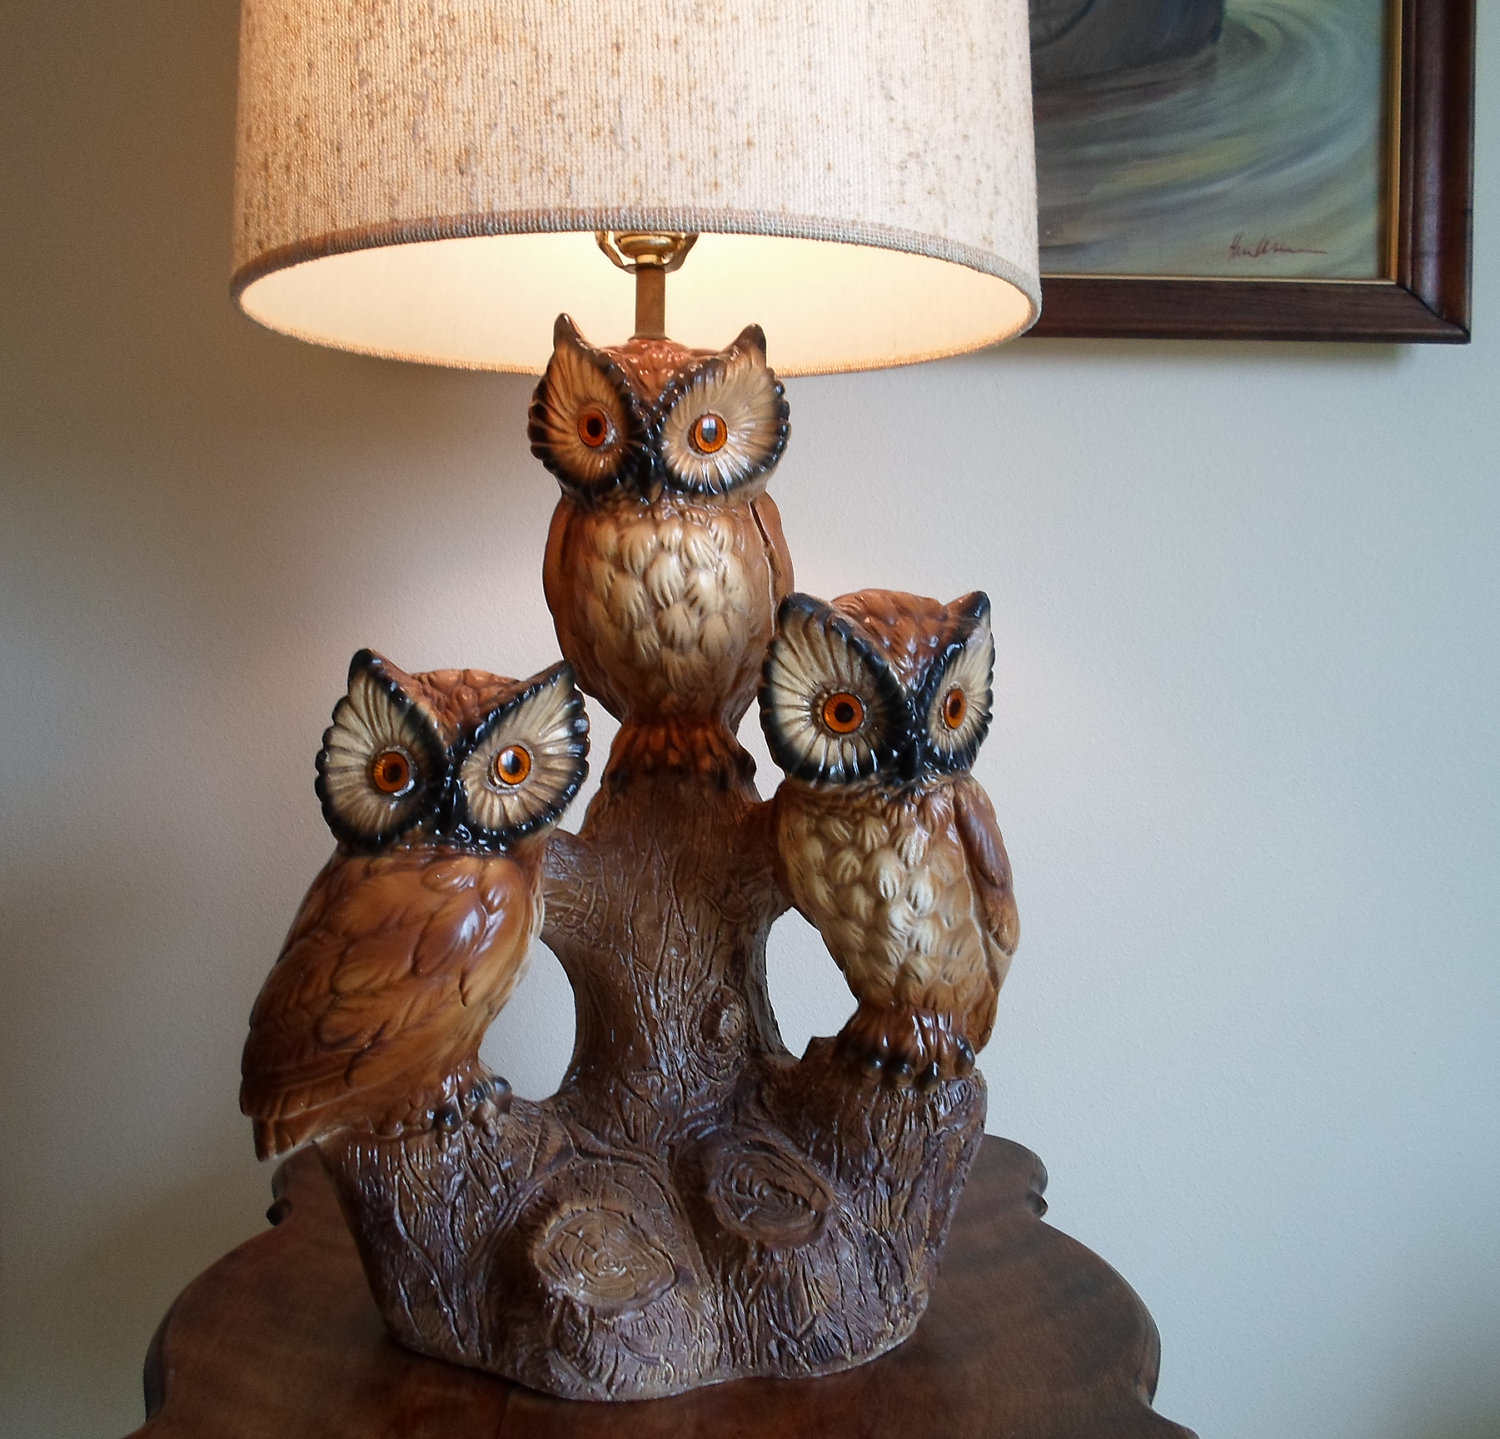 Make Your Bedroom Look Romantic With Antique Owl Lamp